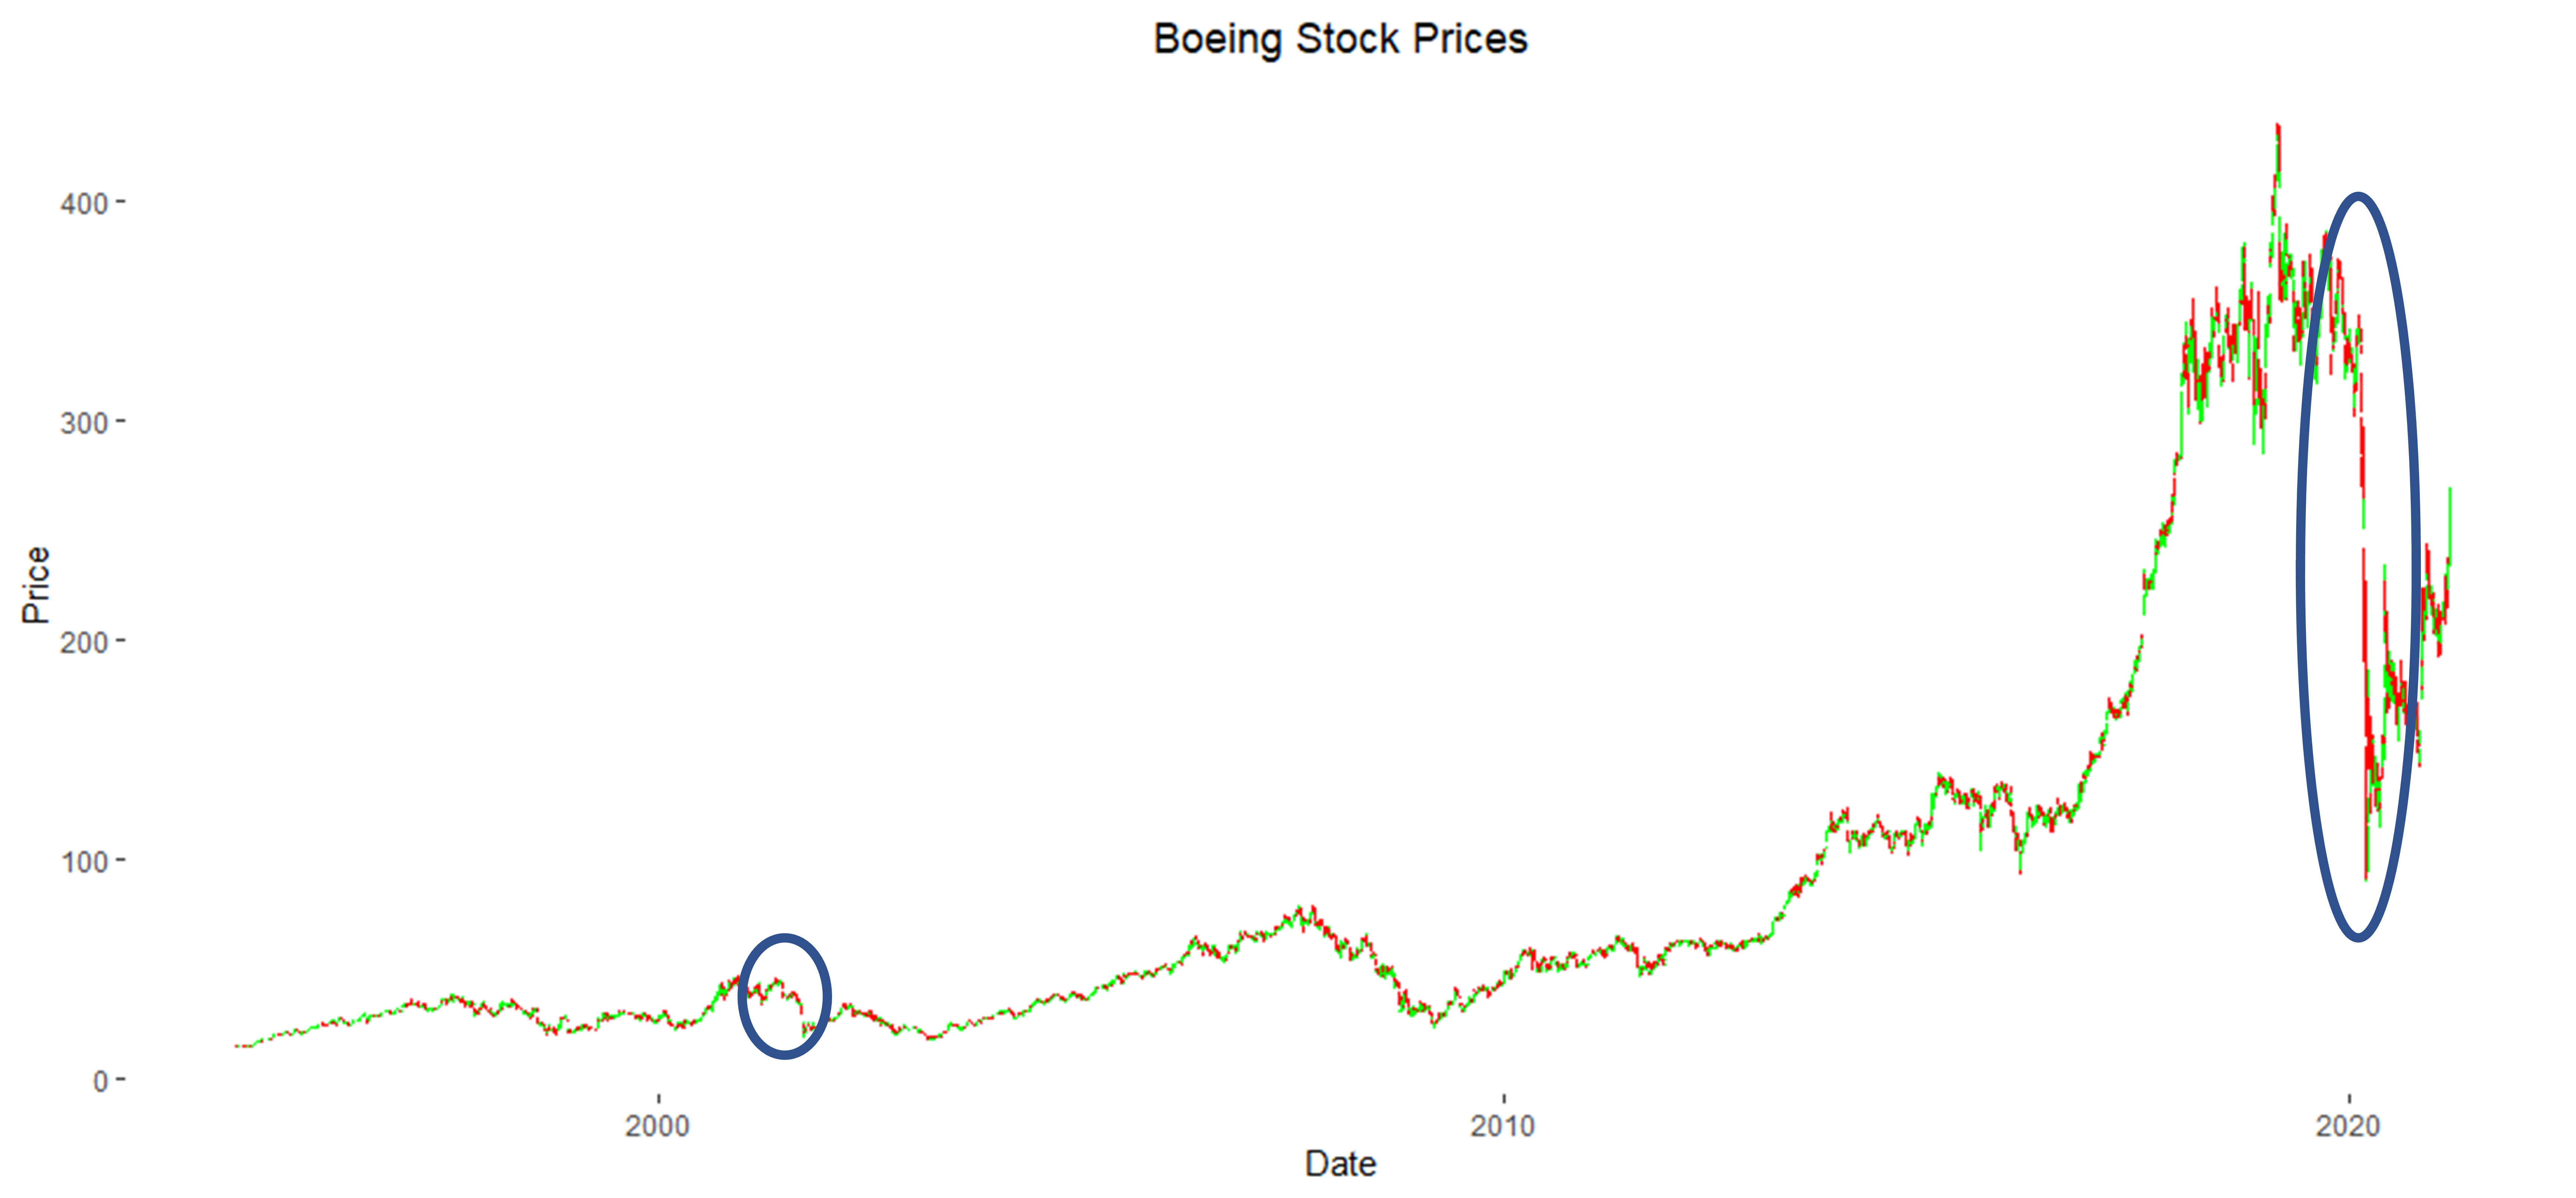 Boeing Stock Prices for Historical Test